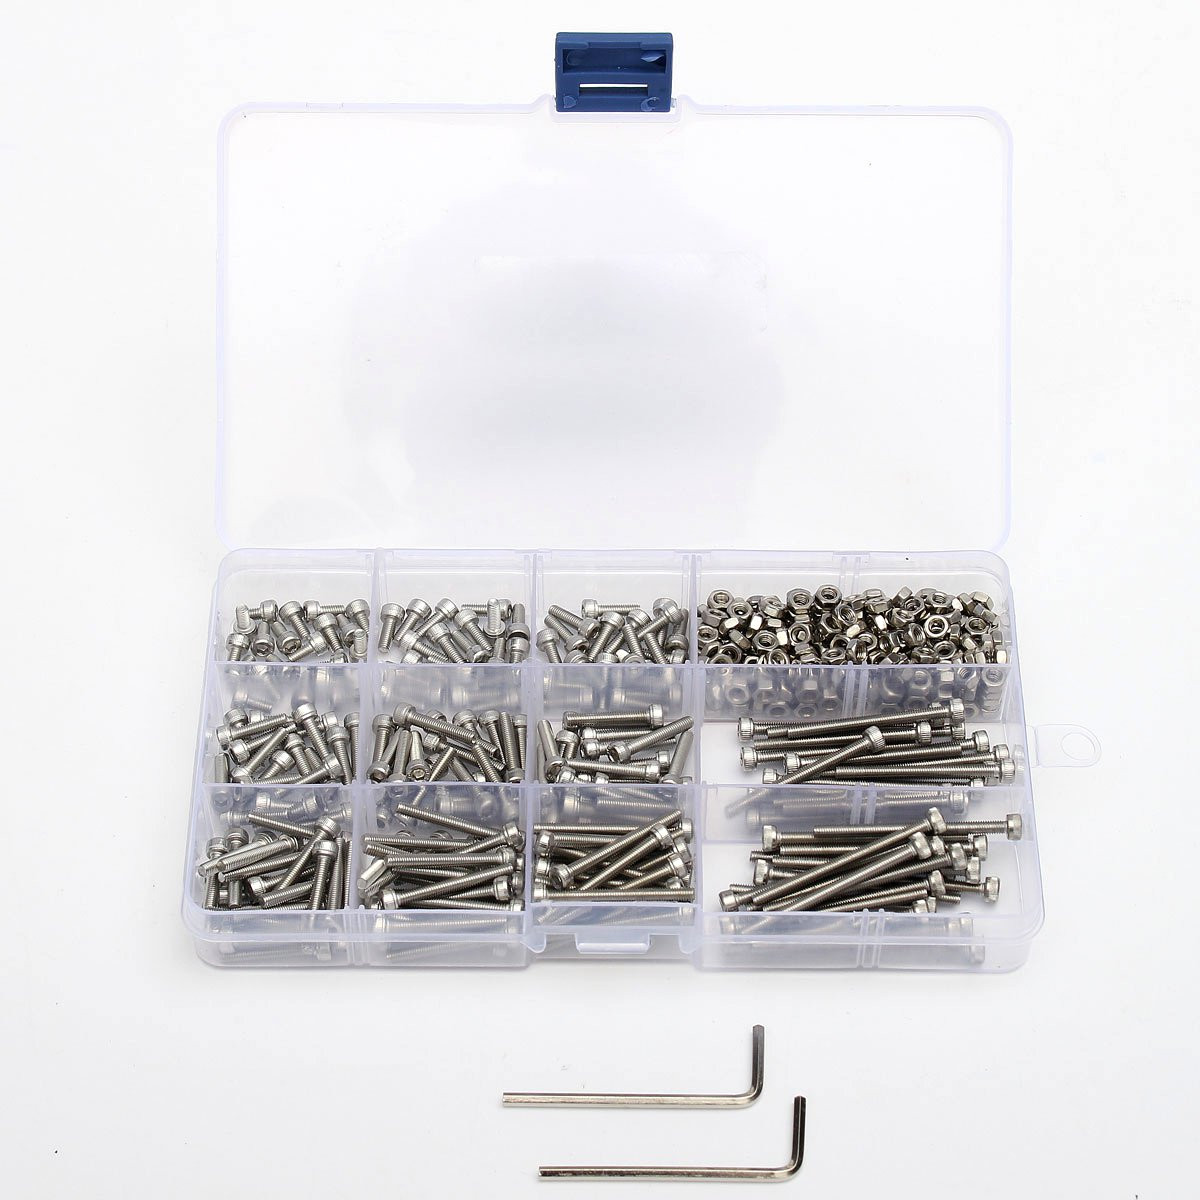 442pcs Silver <font><b>M3</b></font> Stainless Steel Hex Head Socket Cap Screws <font><b>M3</b></font> Nut Assortment Kit With 2 Hexagon Handle image